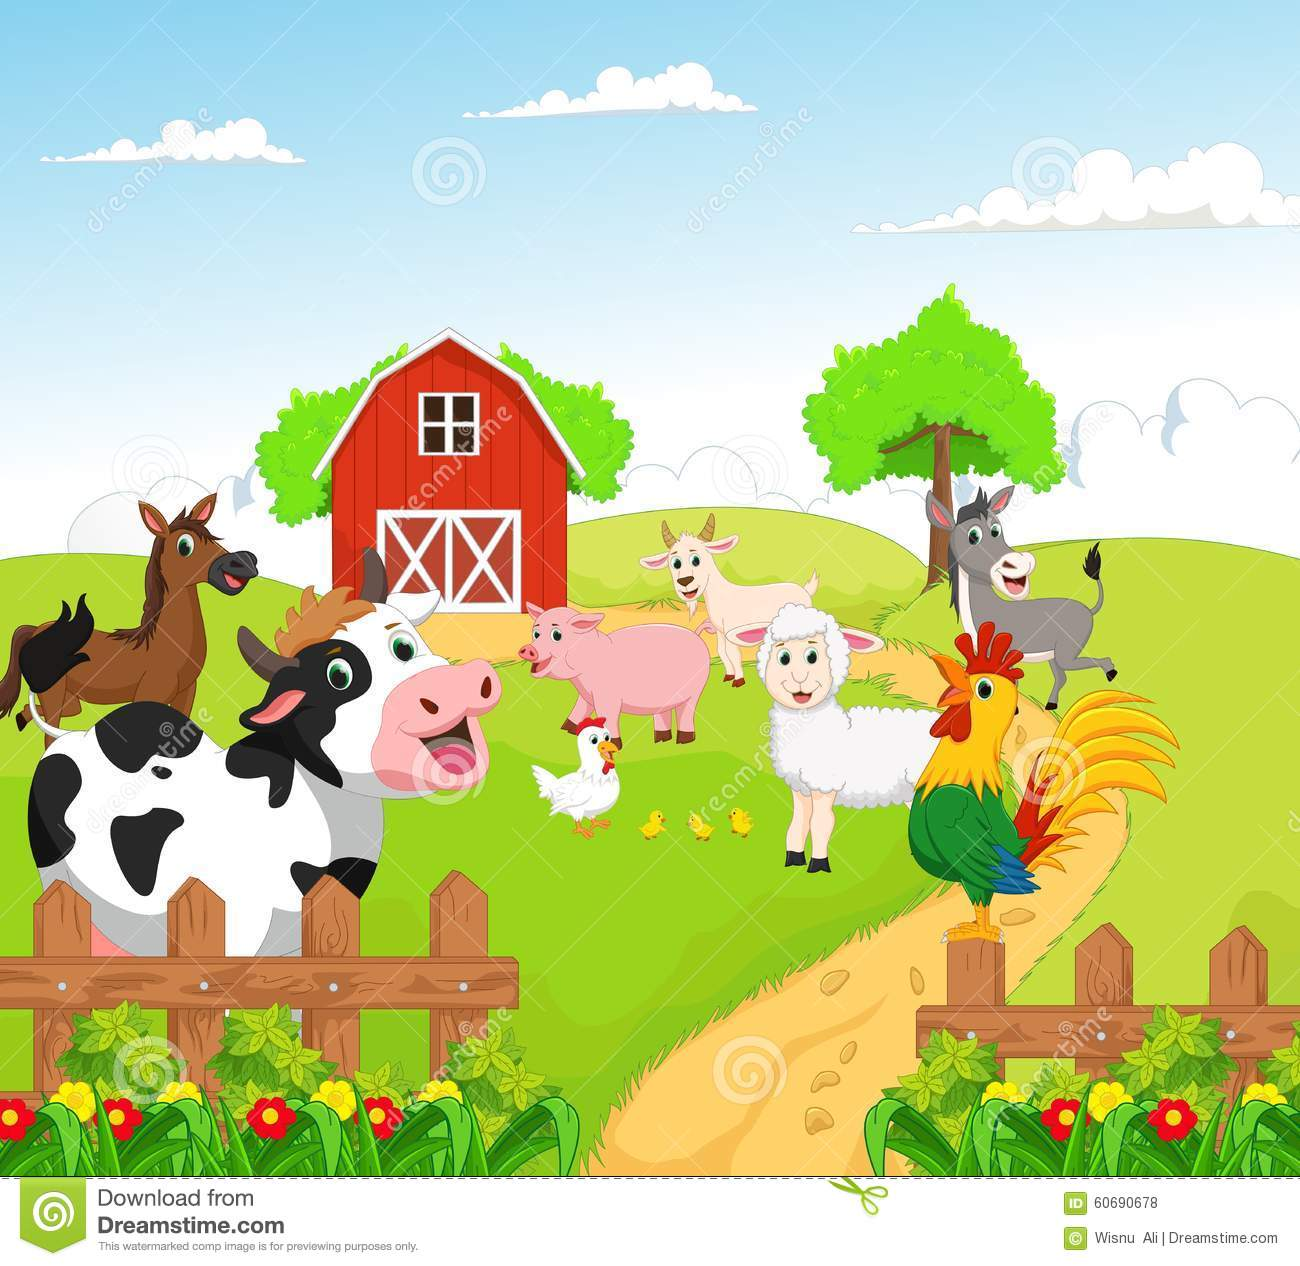 Free Barn Plans Collection Of Farm Animals With Background Stock Vector